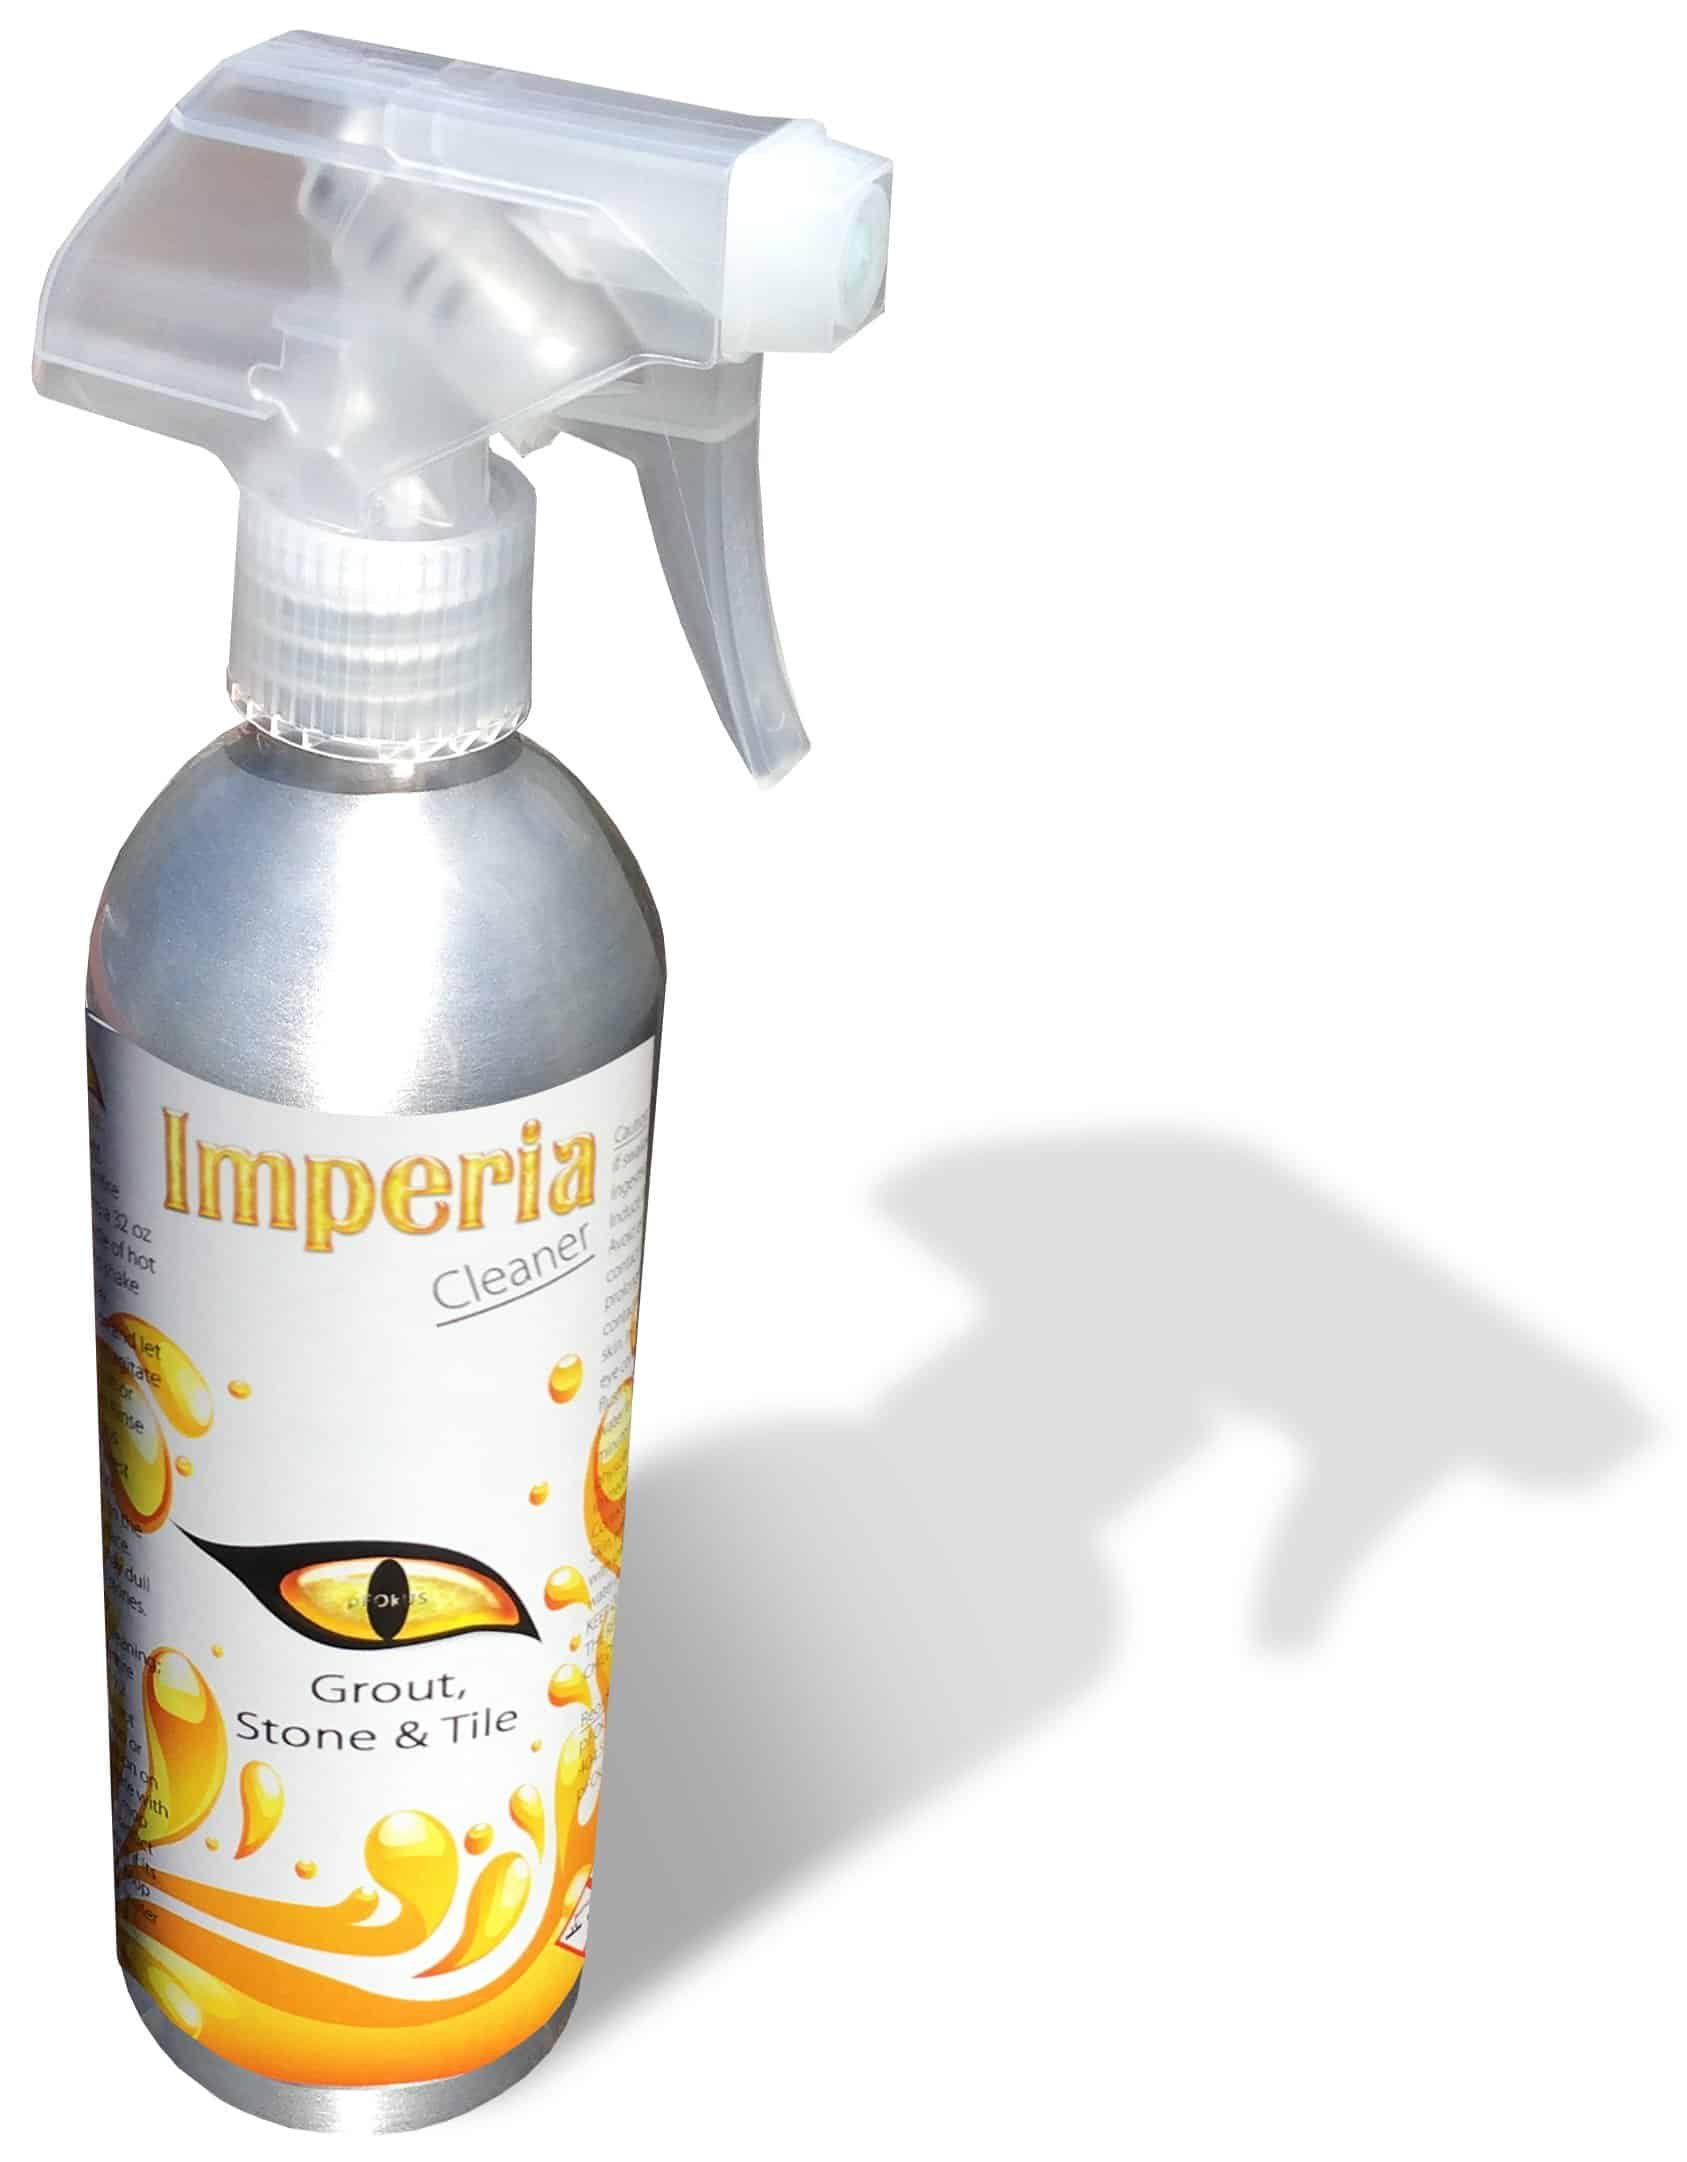 Imperia Maintenance Tile and Grout Cleaner with Shower Aluminum Spray Bottle